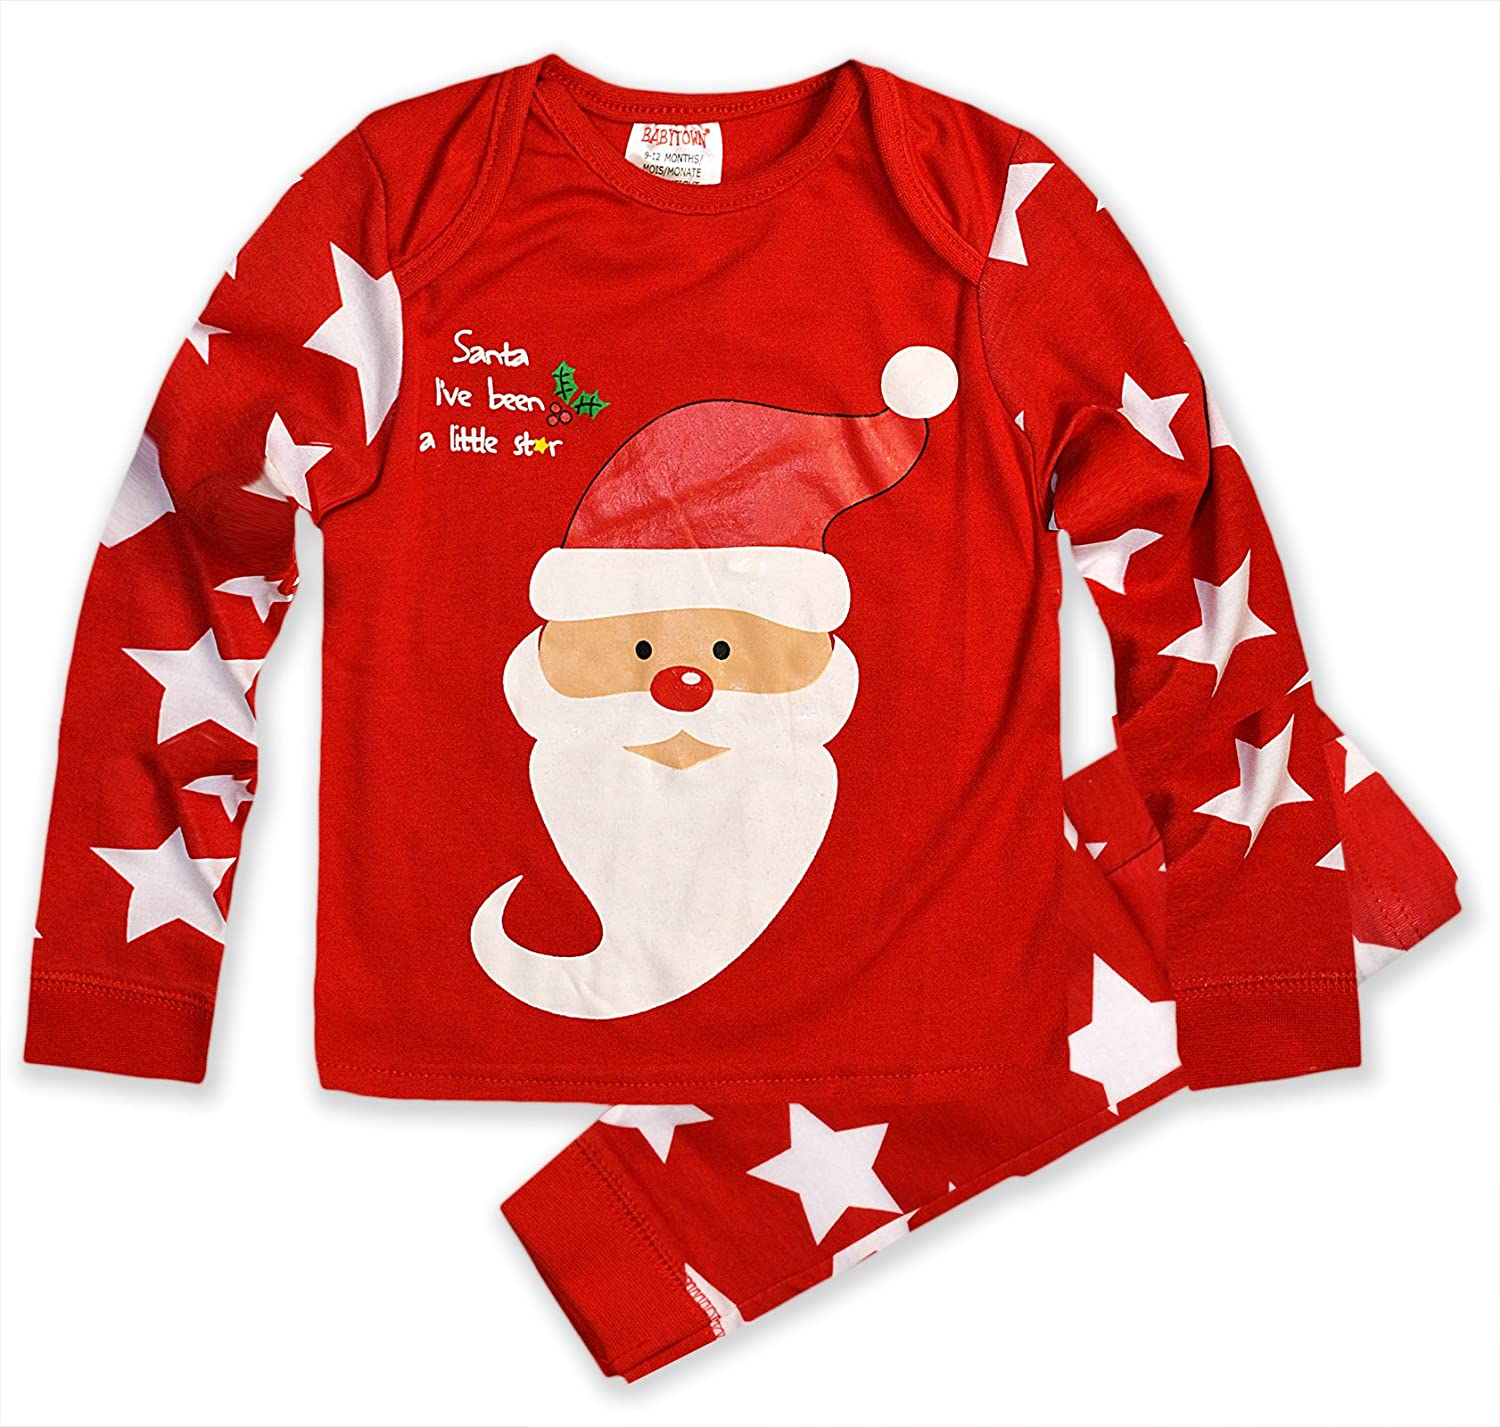 amazoncom babies christmas pajamas baby boys girls santa rudolph sleepwear set clothing - Childrens Christmas Pyjamas